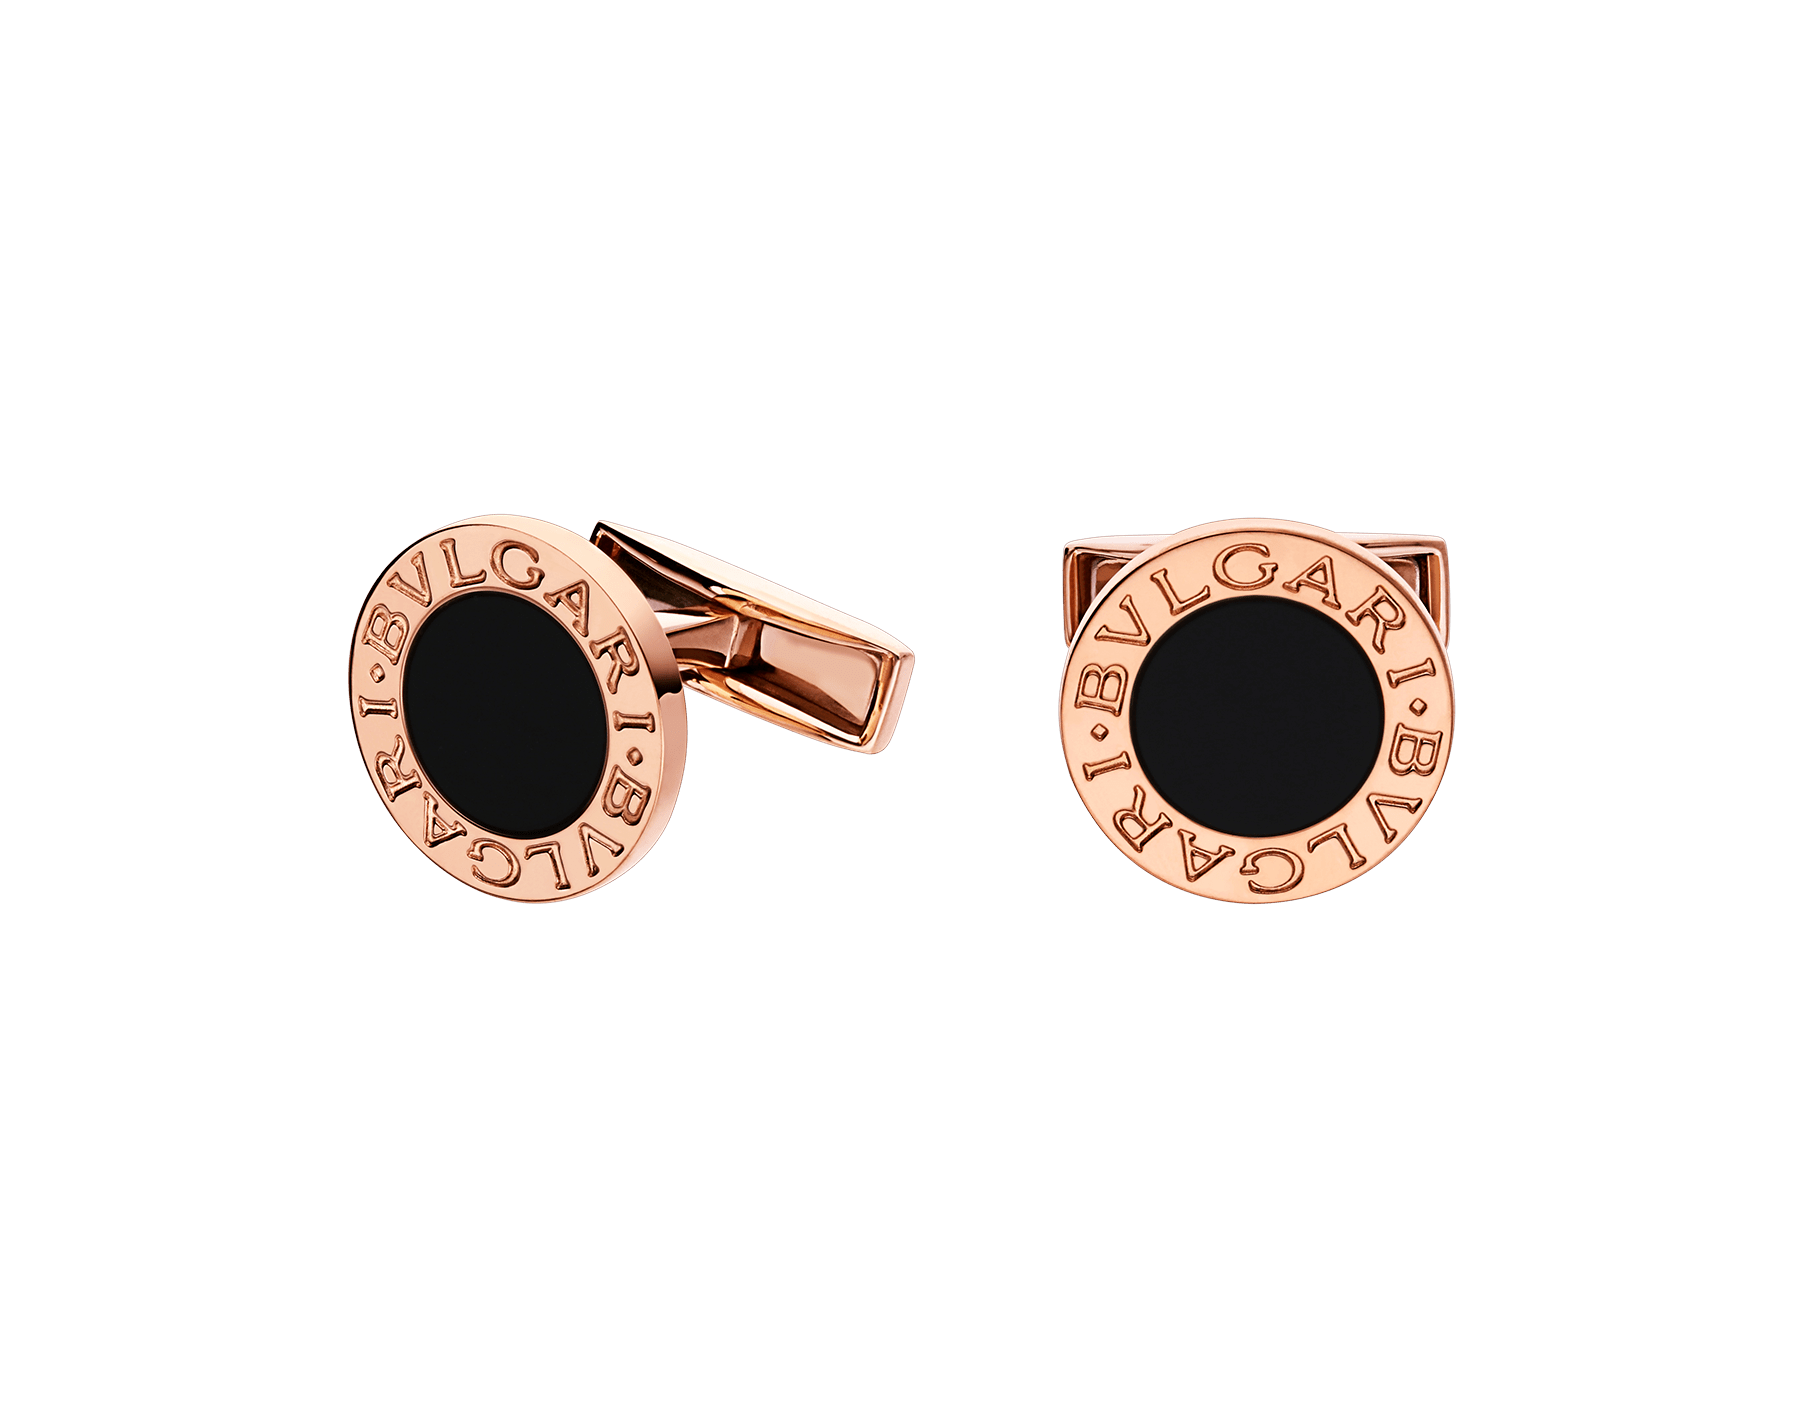 BVLGARI BVLGARI 18kt rose gold cufflinks set with black onyx elements 344429 image 1